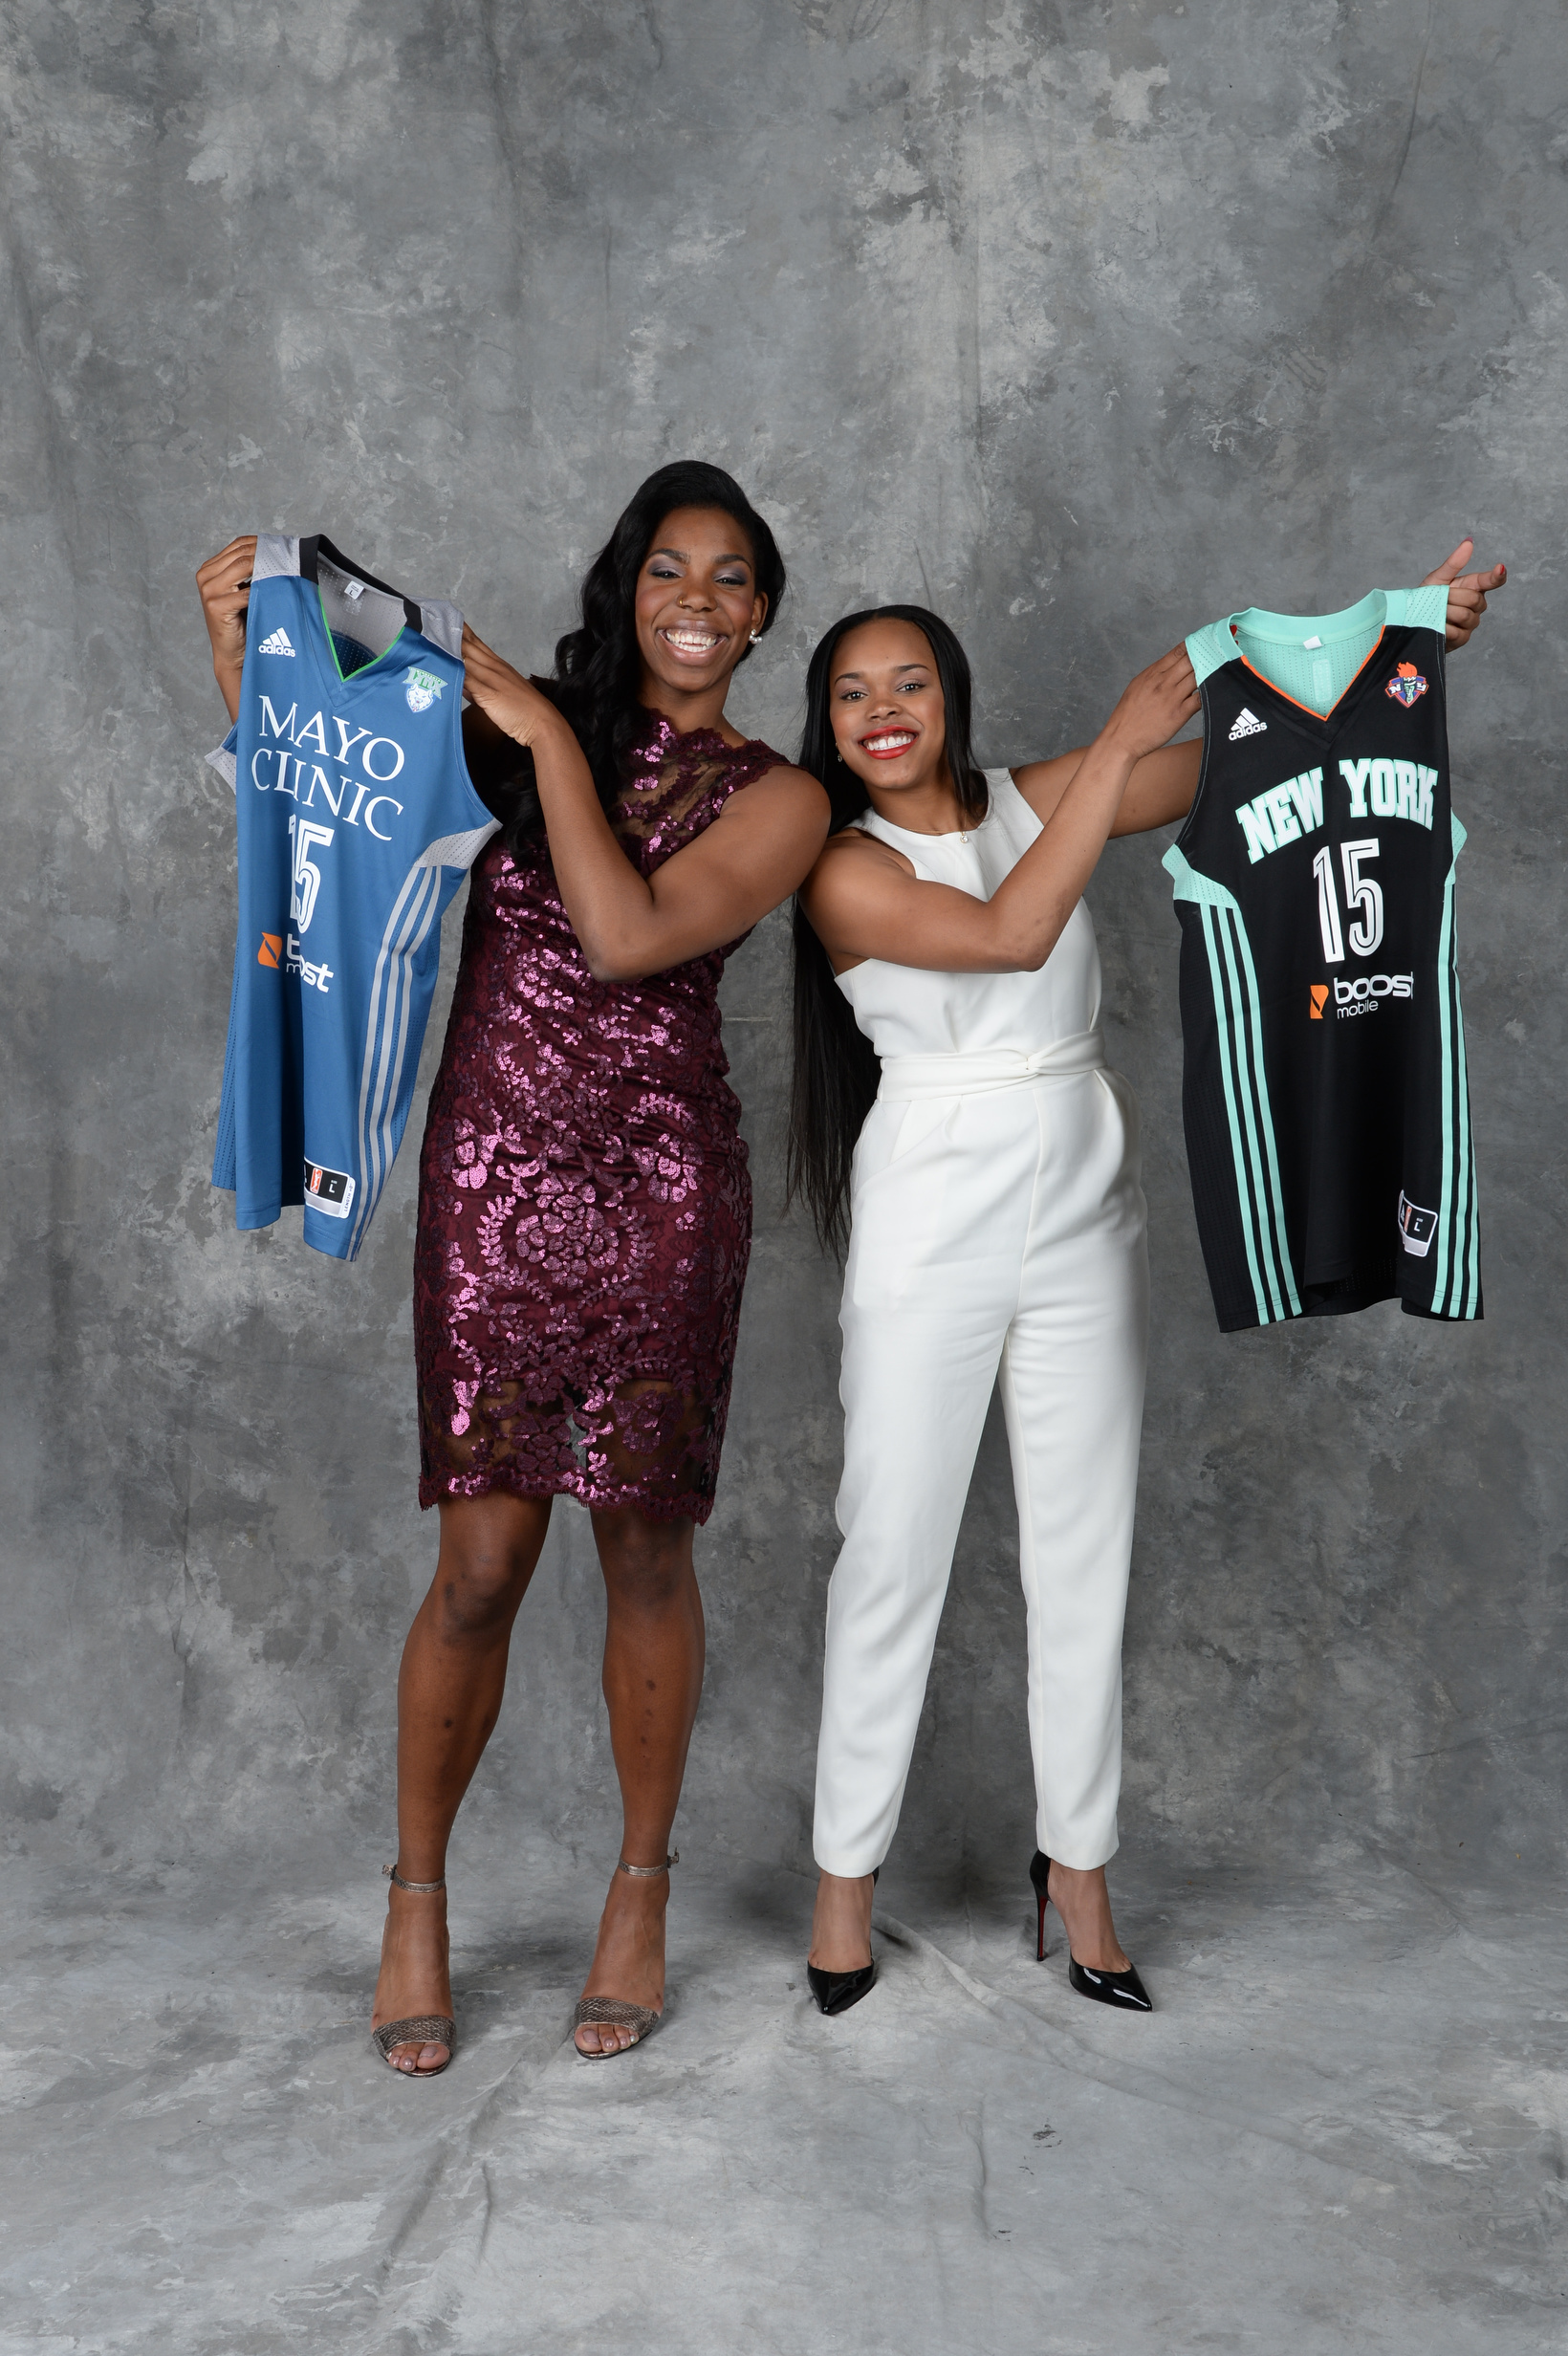 UNCASVILLE, CT - APRIL 16:  The number nine overall pick Brittany Boyd of the New York Liberty and the number sixteen overall pick Reshanda Gray of the Minnesota Lynx poses for a portrait during the 2015 WNBA Draft Presented By State Farm on April 16, 2015 at Mohegan Sun Arena in Uncasville, Connecticut.  NOTE TO USER: User expressly acknowledges and agrees that, by downloading and/or using this Photograph, user is consenting to the terms and conditions of the Getty Images License Agreement. Mandatory Copyright Notice: Copyright 2015 NBAE  (Photo by Jennifer Pottheiser/NBAE via Getty Images)